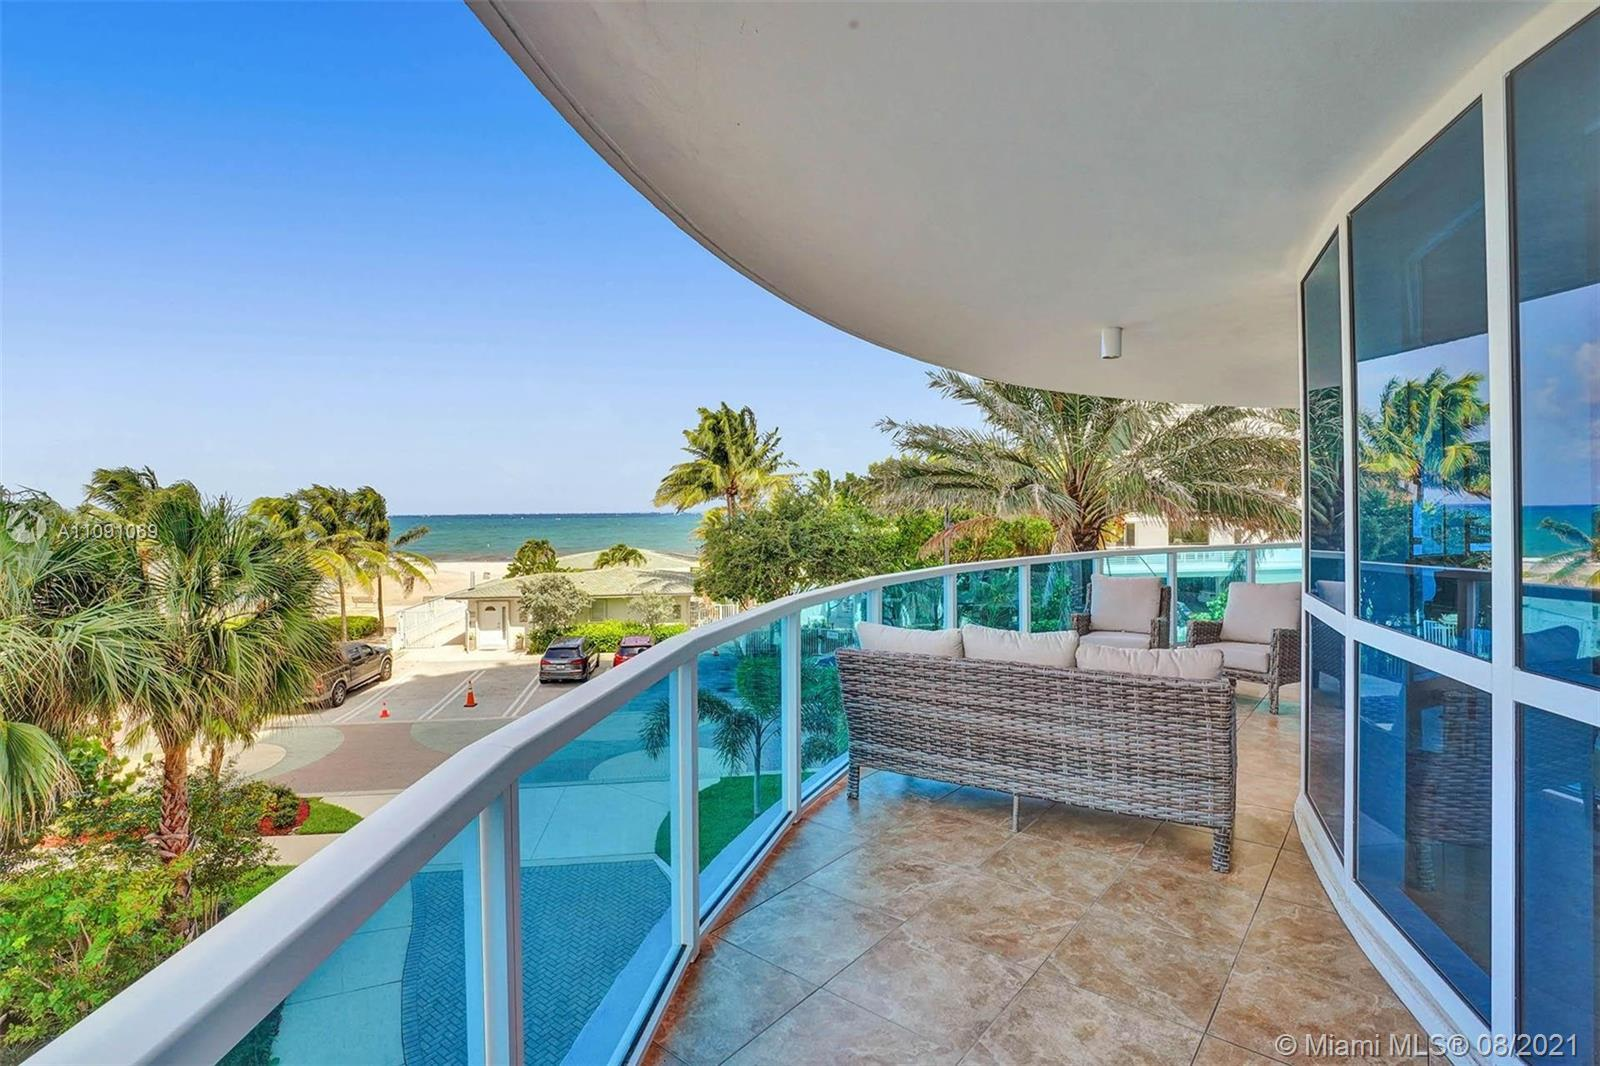 Boutique Condo, over 2800 SF of Ocean front living.  Private Beach access, Oceanfront pool, private